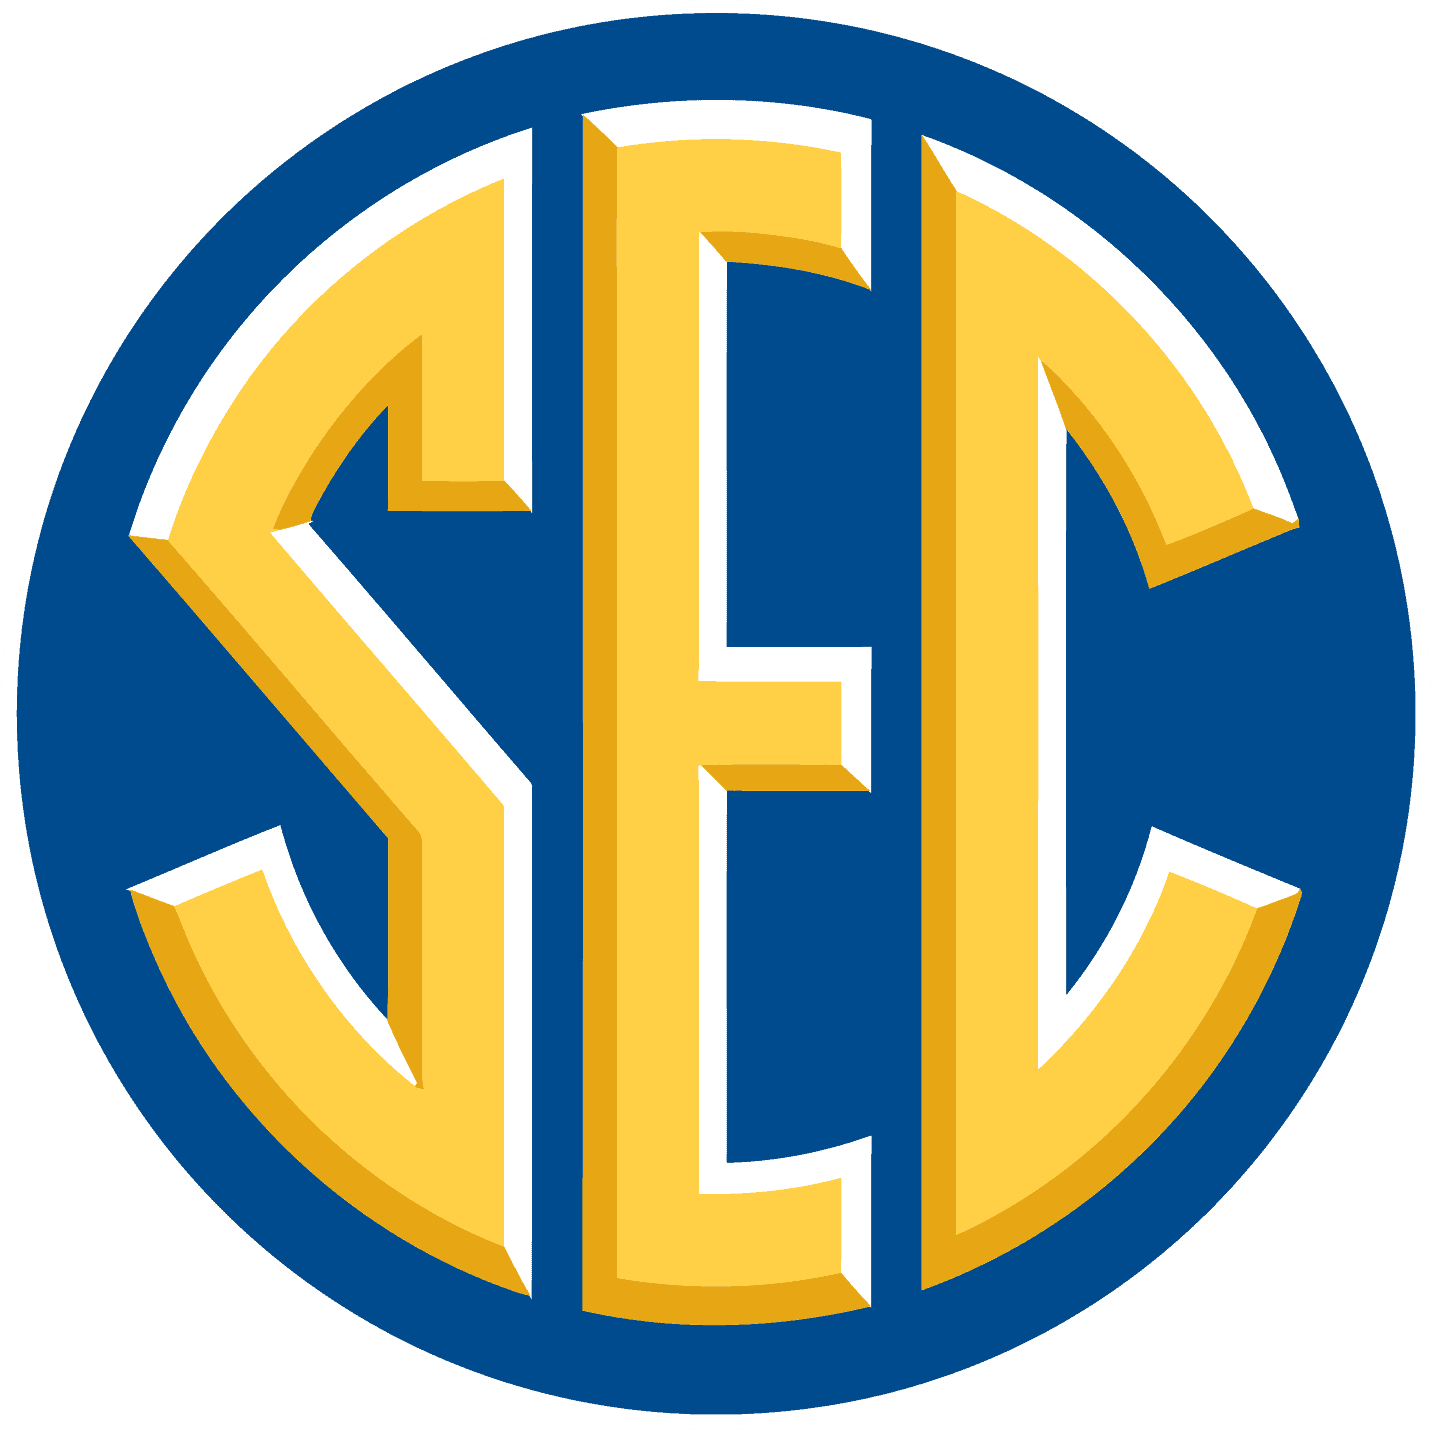 Southeastern Conference Logo (SEC) png